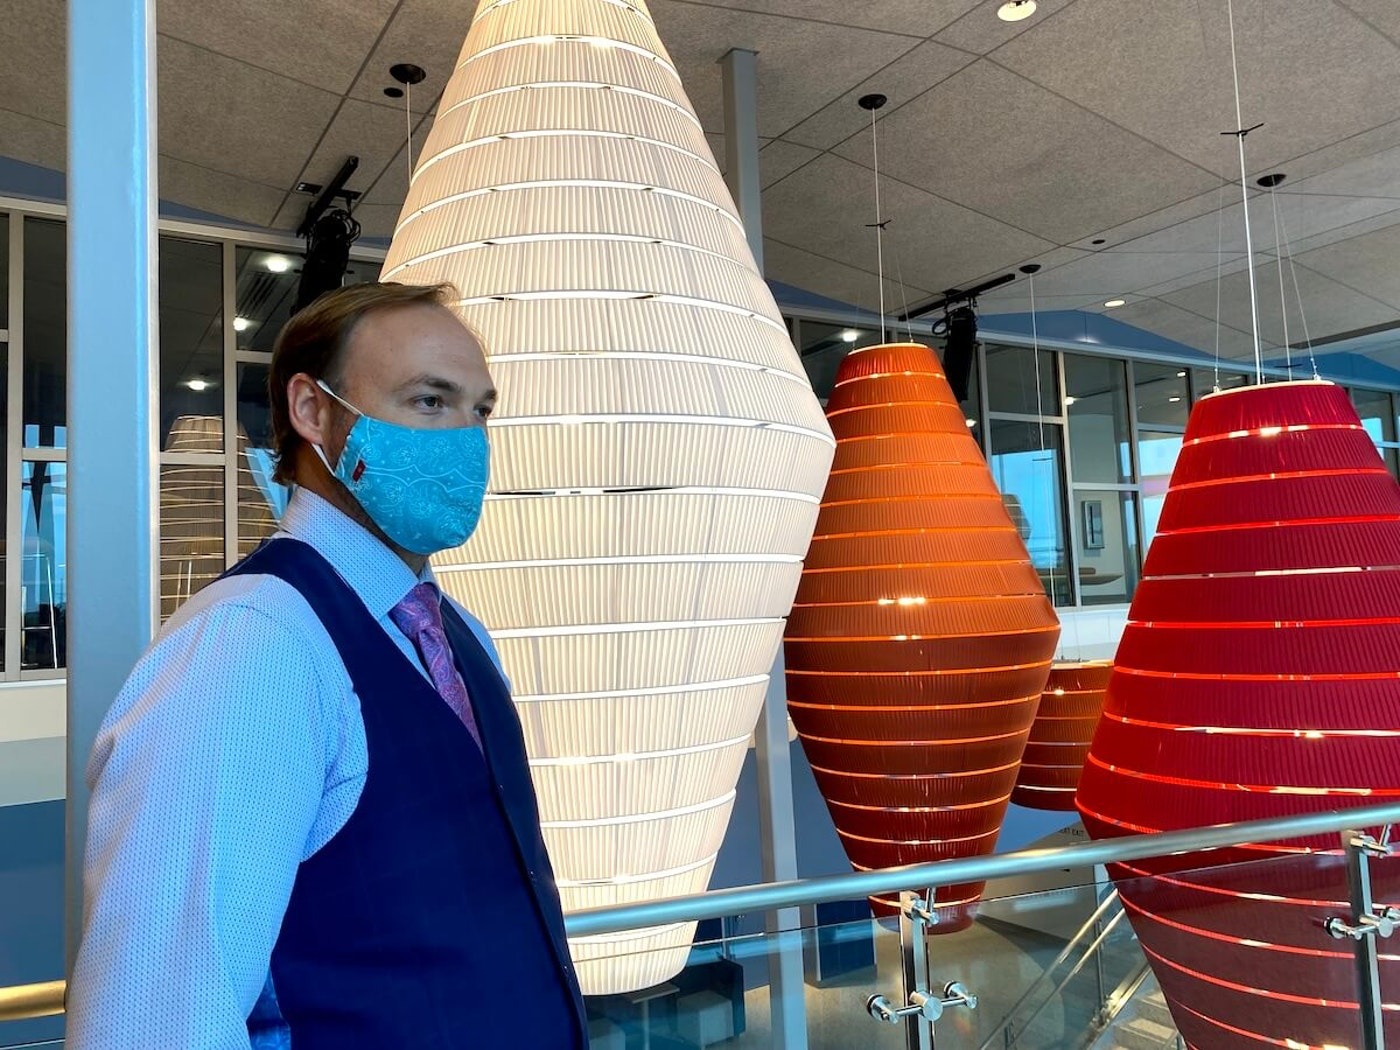 """Jason Jon Anderson, executive director of the Pablo Center at the Confluence in Eau Claire, discusses challenges that arts center and others have faced without operating revenue during the coronavirus pandemic. He called federal relief funding to the Pablo Center and other art and entertainment venues """"a vital lifeline"""" and said many of them may have had to shut down for good without those dollars. (Photo by Julian Emerson)"""